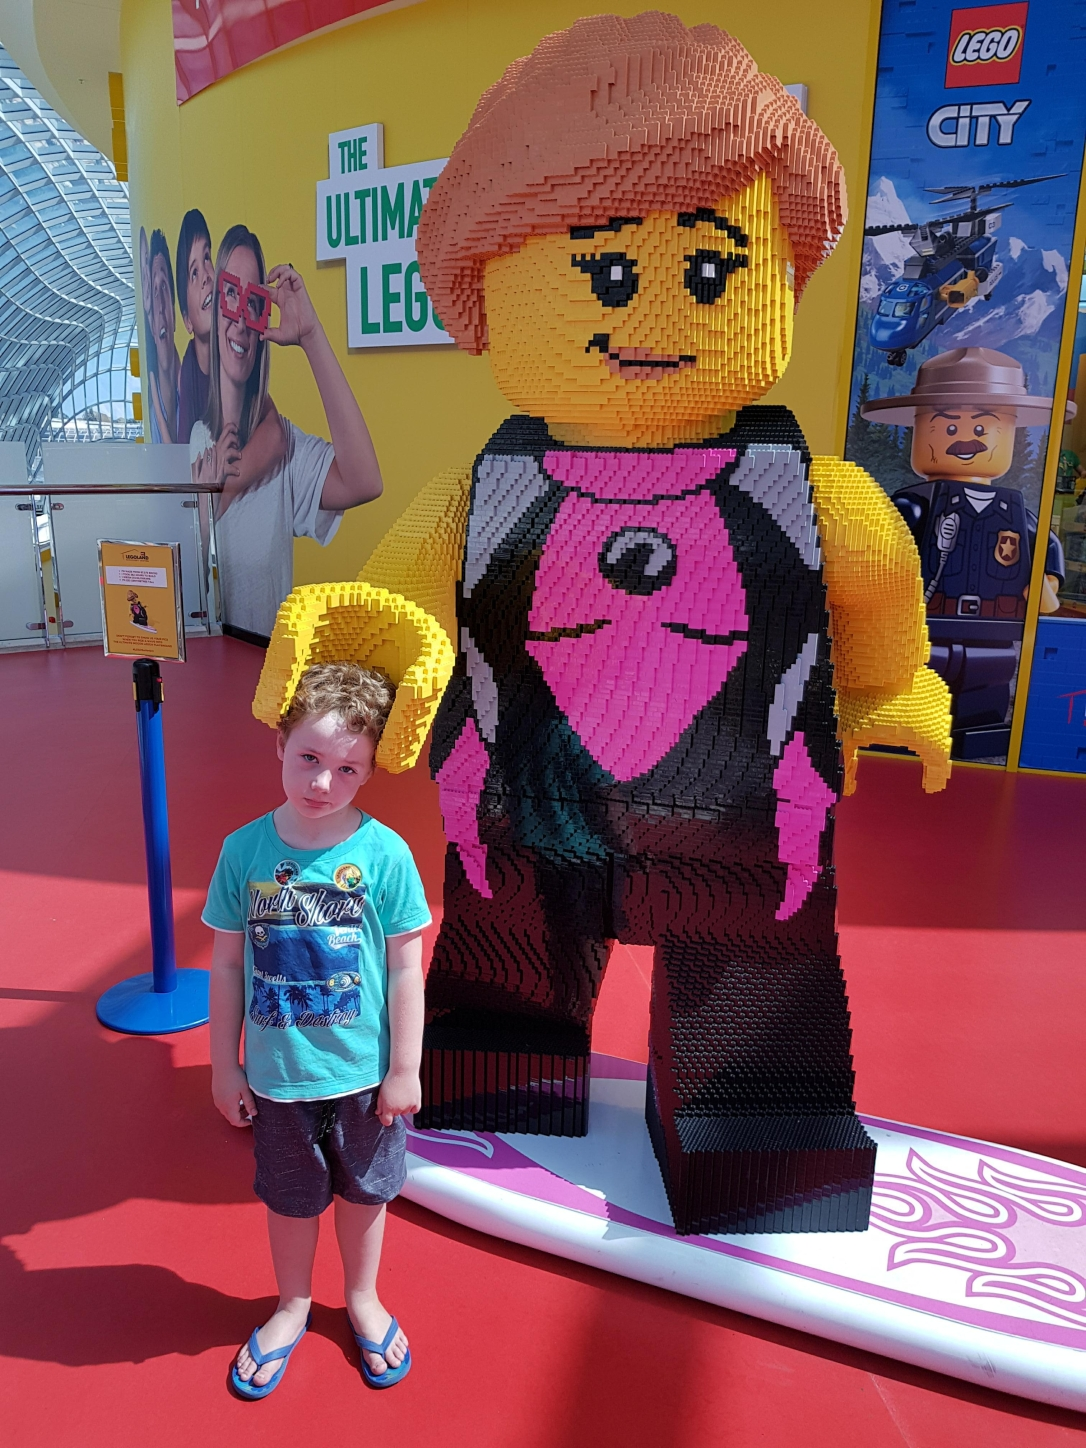 I'm not smiling because I didn't get anything from the Lego shop!